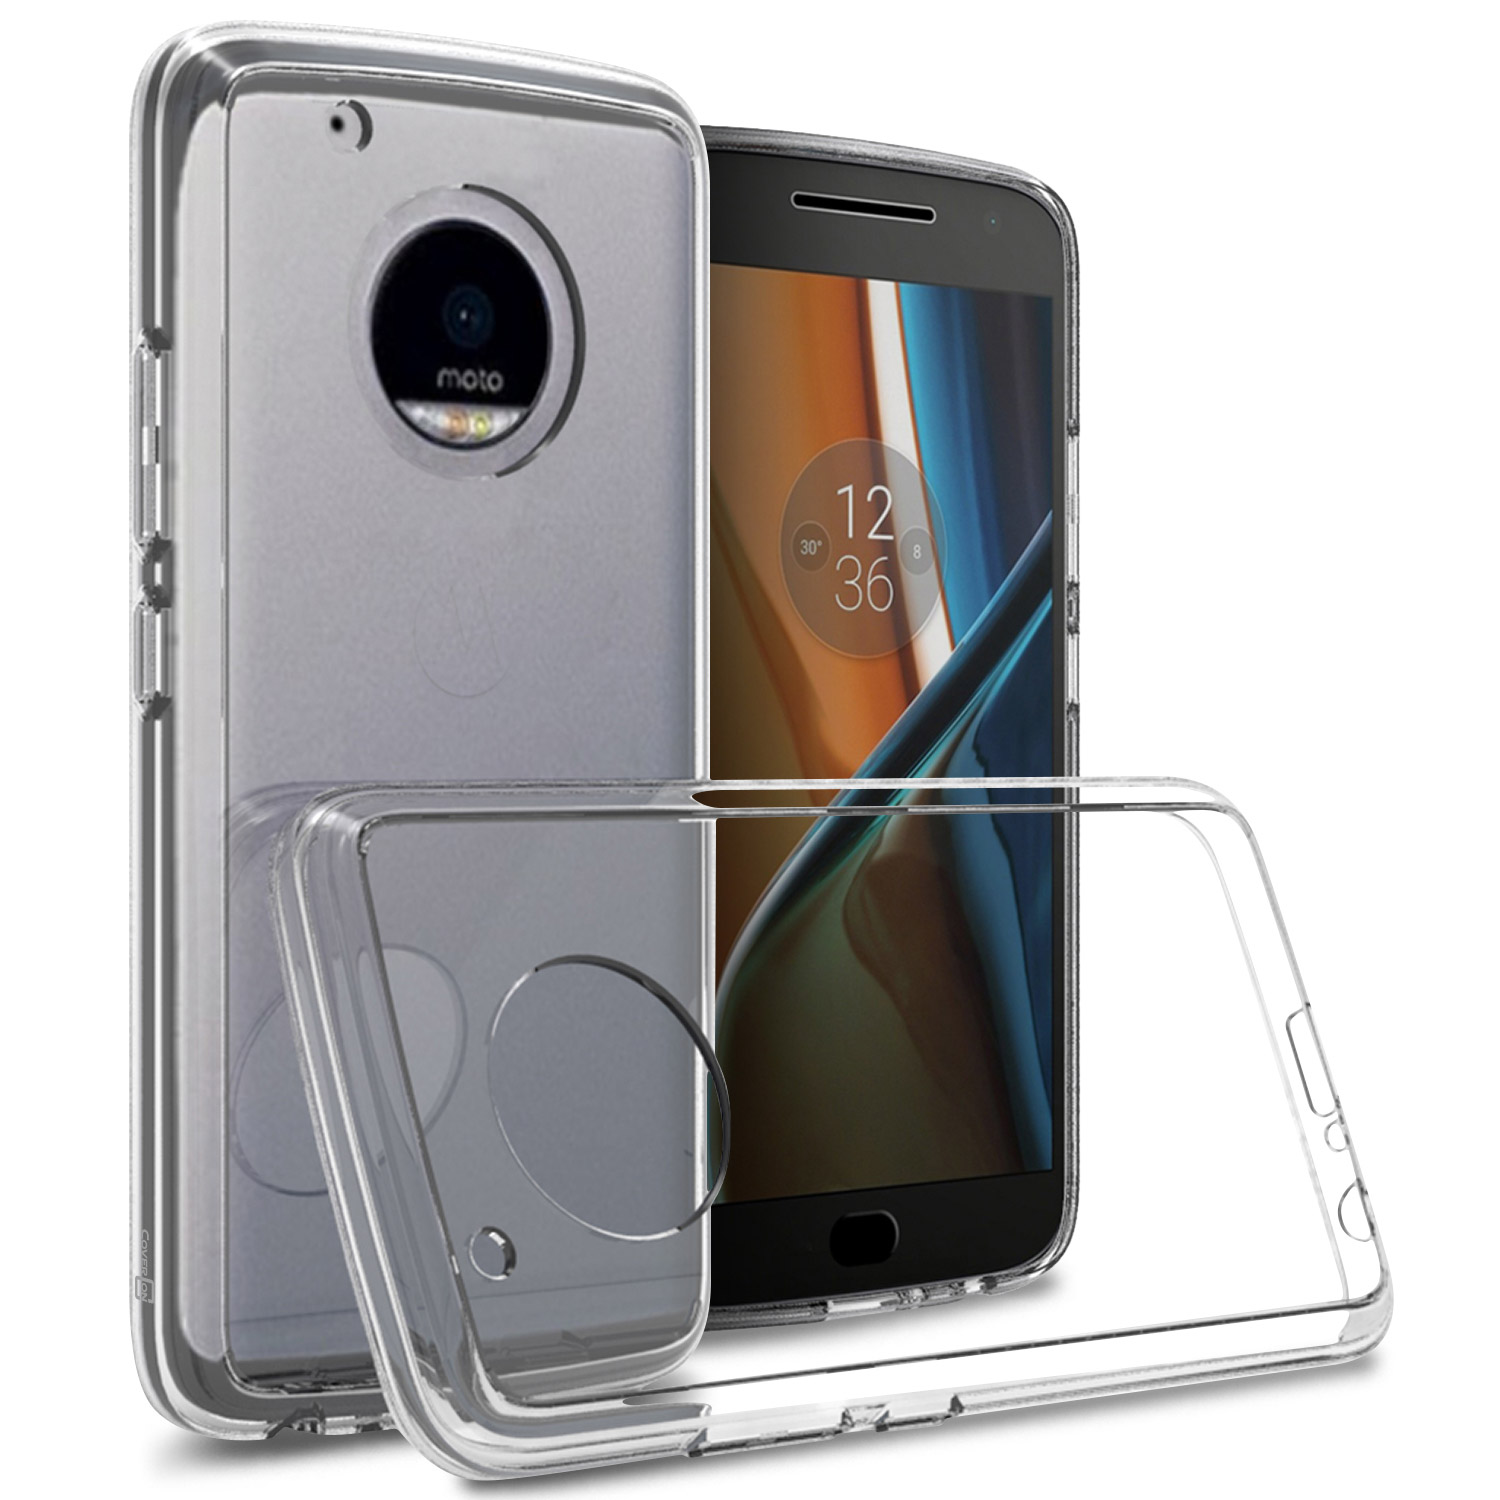 new product bae49 01c07 Details about Clear Hybrid TPU Bumper Hard Cover Case For Motorola Moto G5  Plus / Moto X 2017